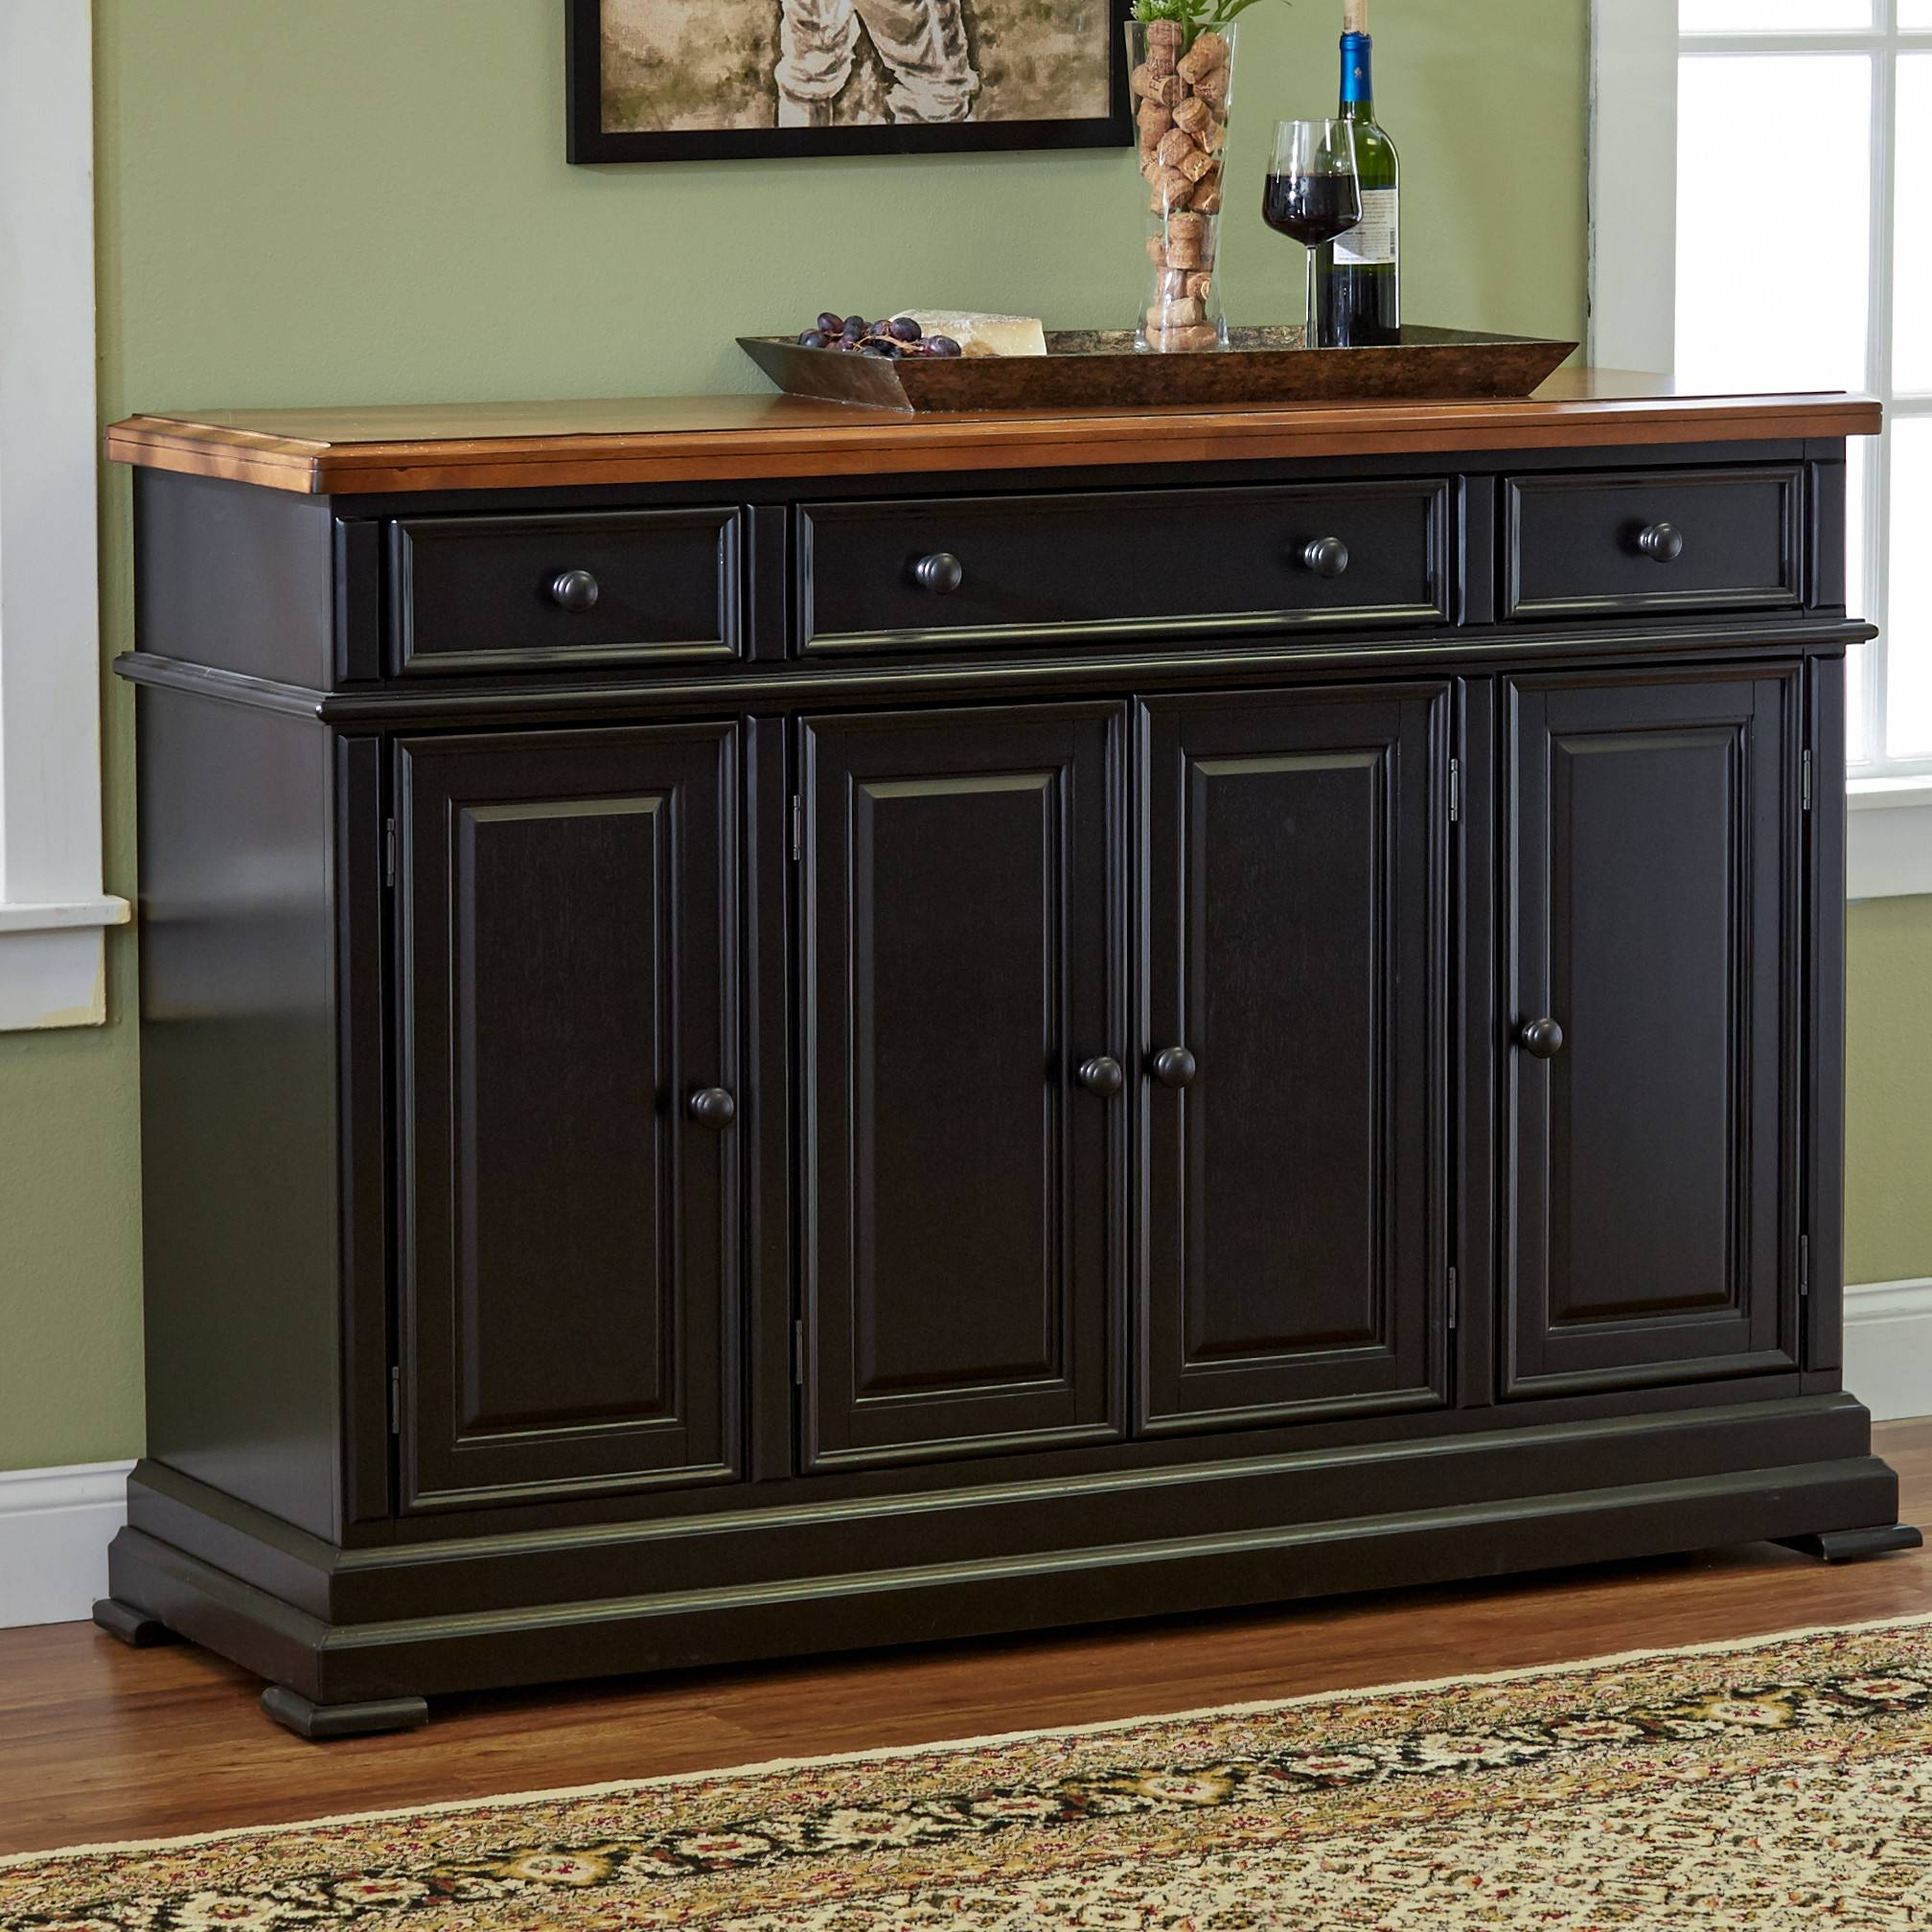 Dining Room Buffet Cabinet Sideboards Buffets Storage Servers 17 within Dining Buffets and Sideboards (Image 7 of 15)